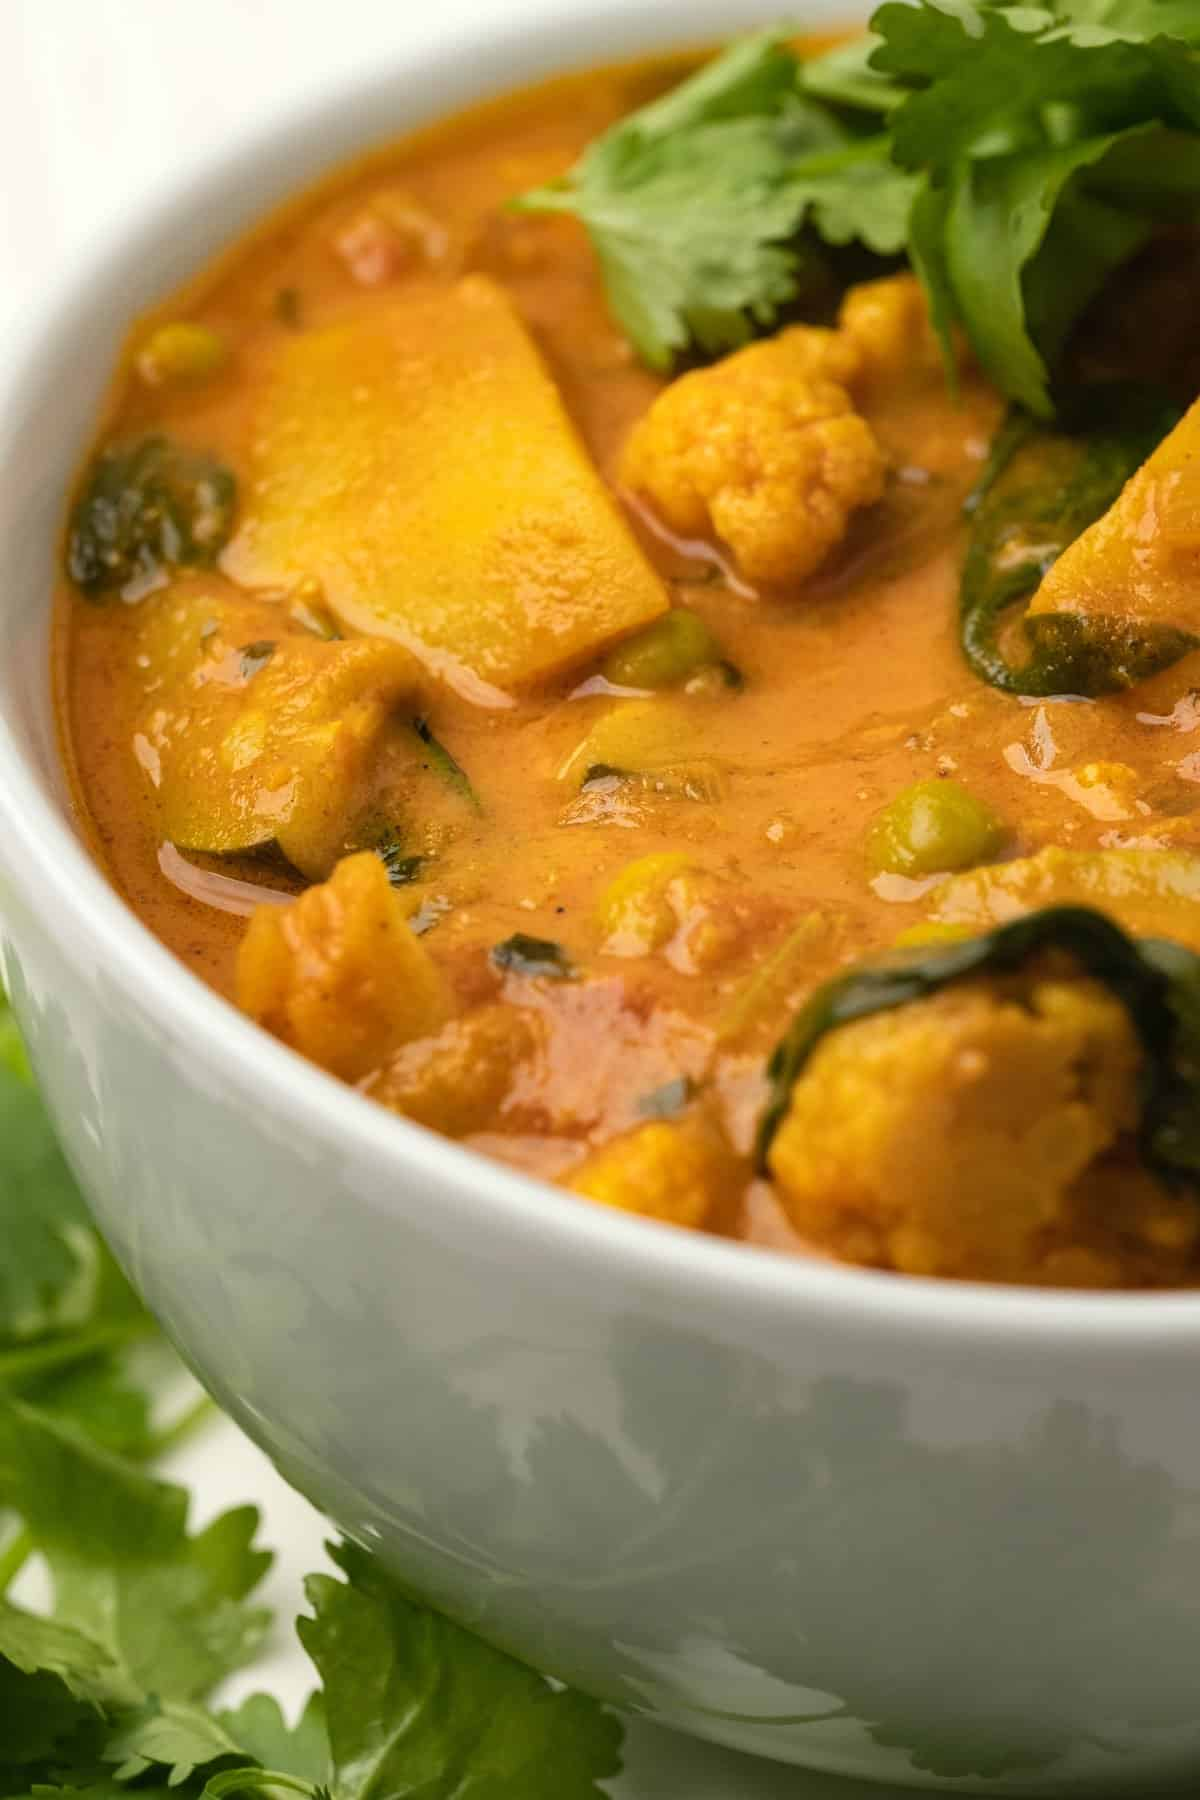 Veggie curry in a white bowl.